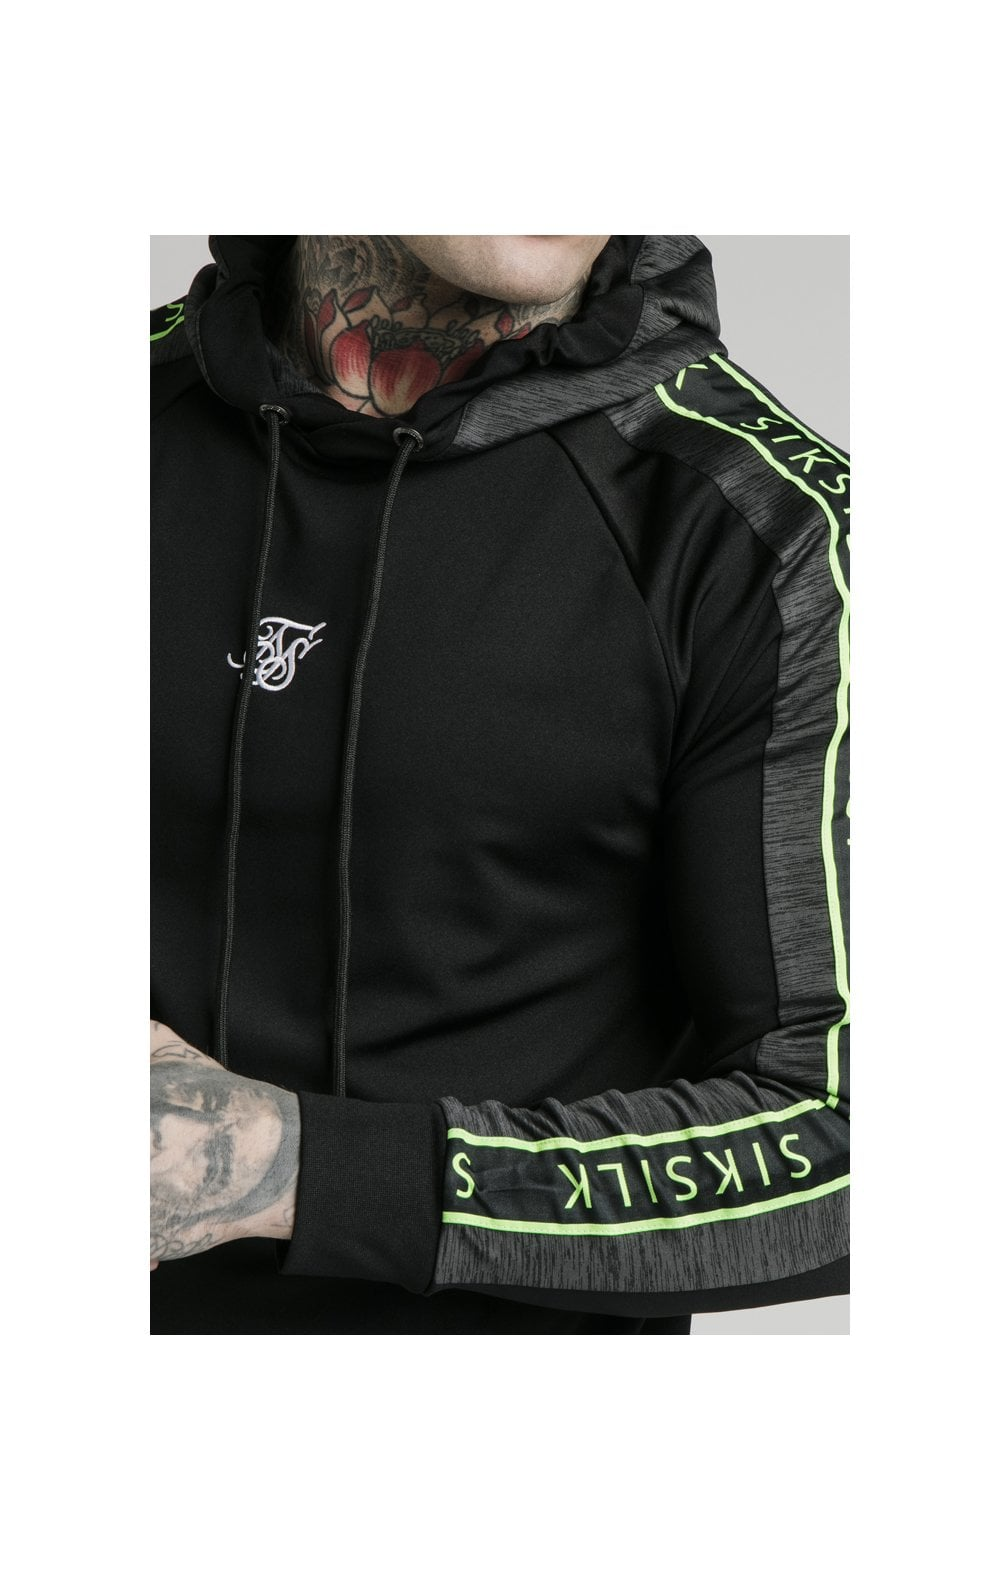 Load image into Gallery viewer, SikSilk Hyper Vapour Overhead Tape Hoodie - Black & Neon Fluro (1)